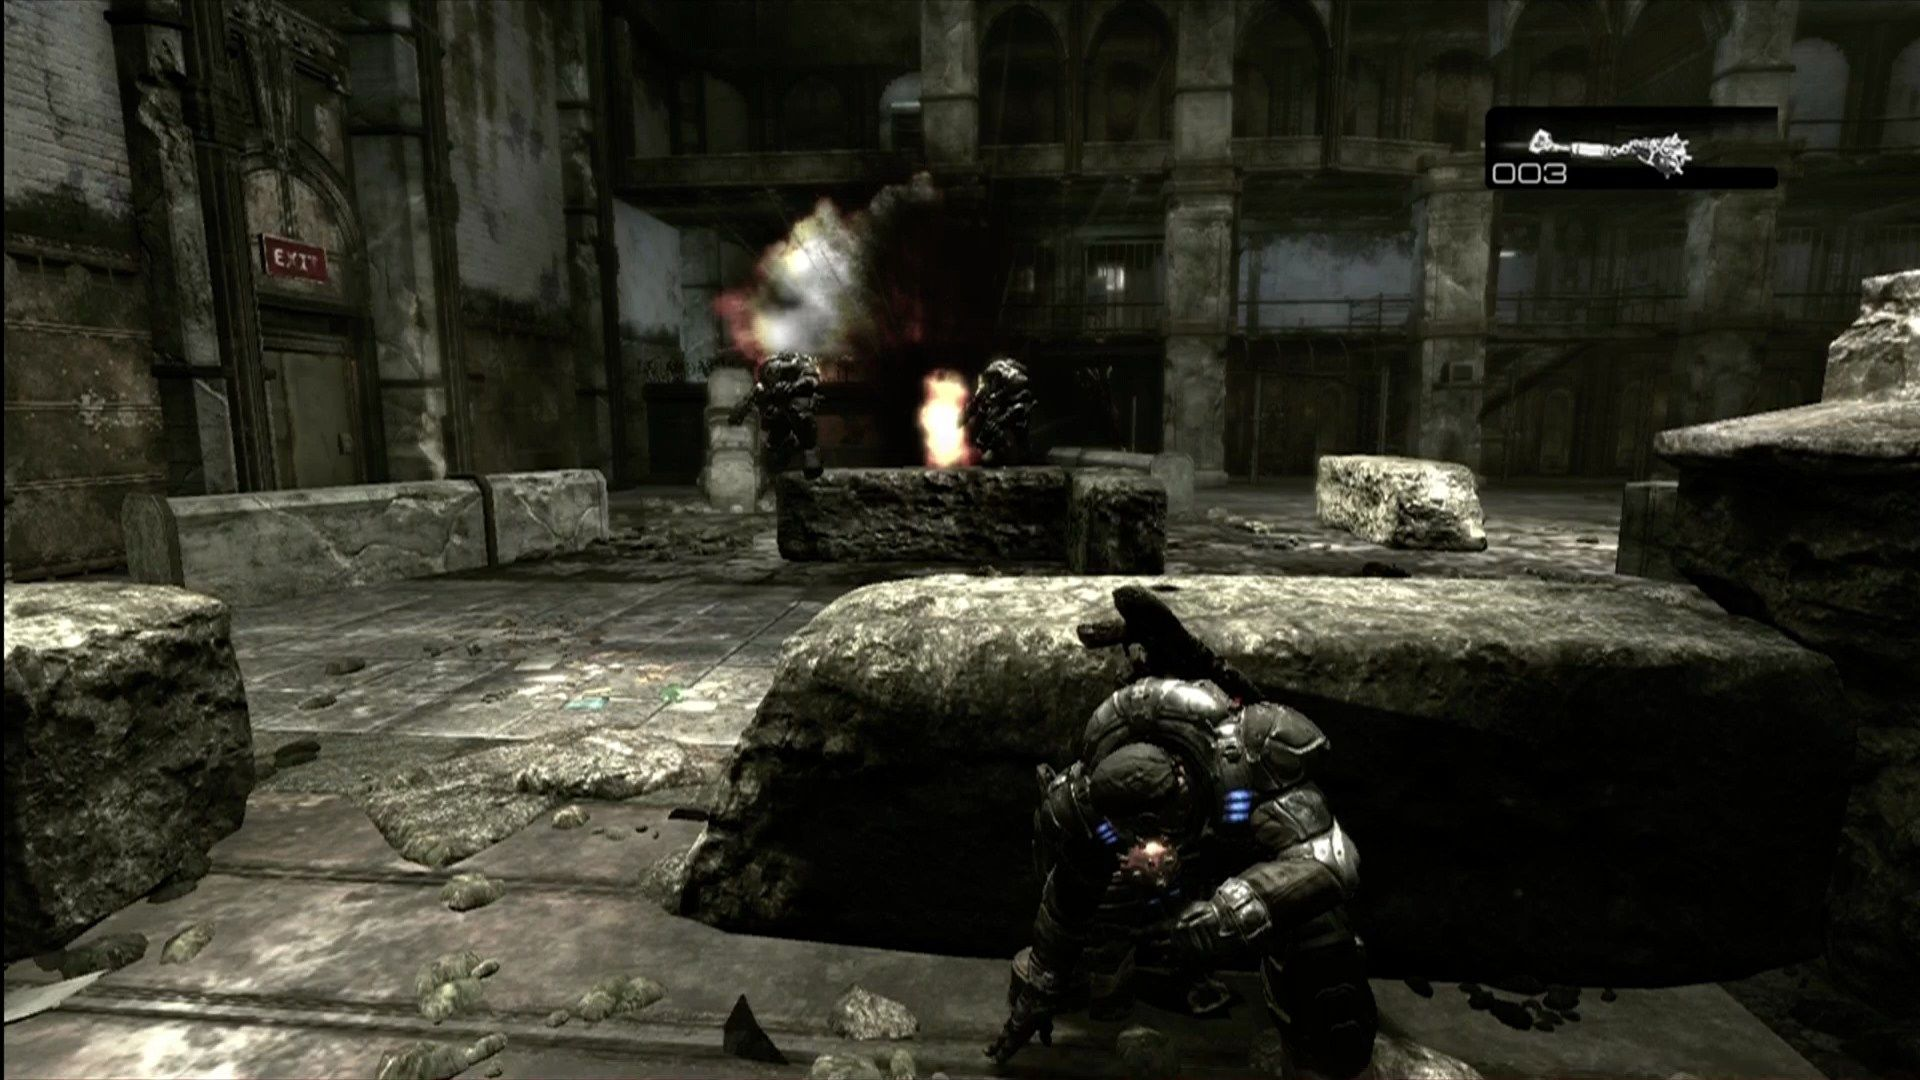 Gears of War Xbox 360 Fun with grenades.